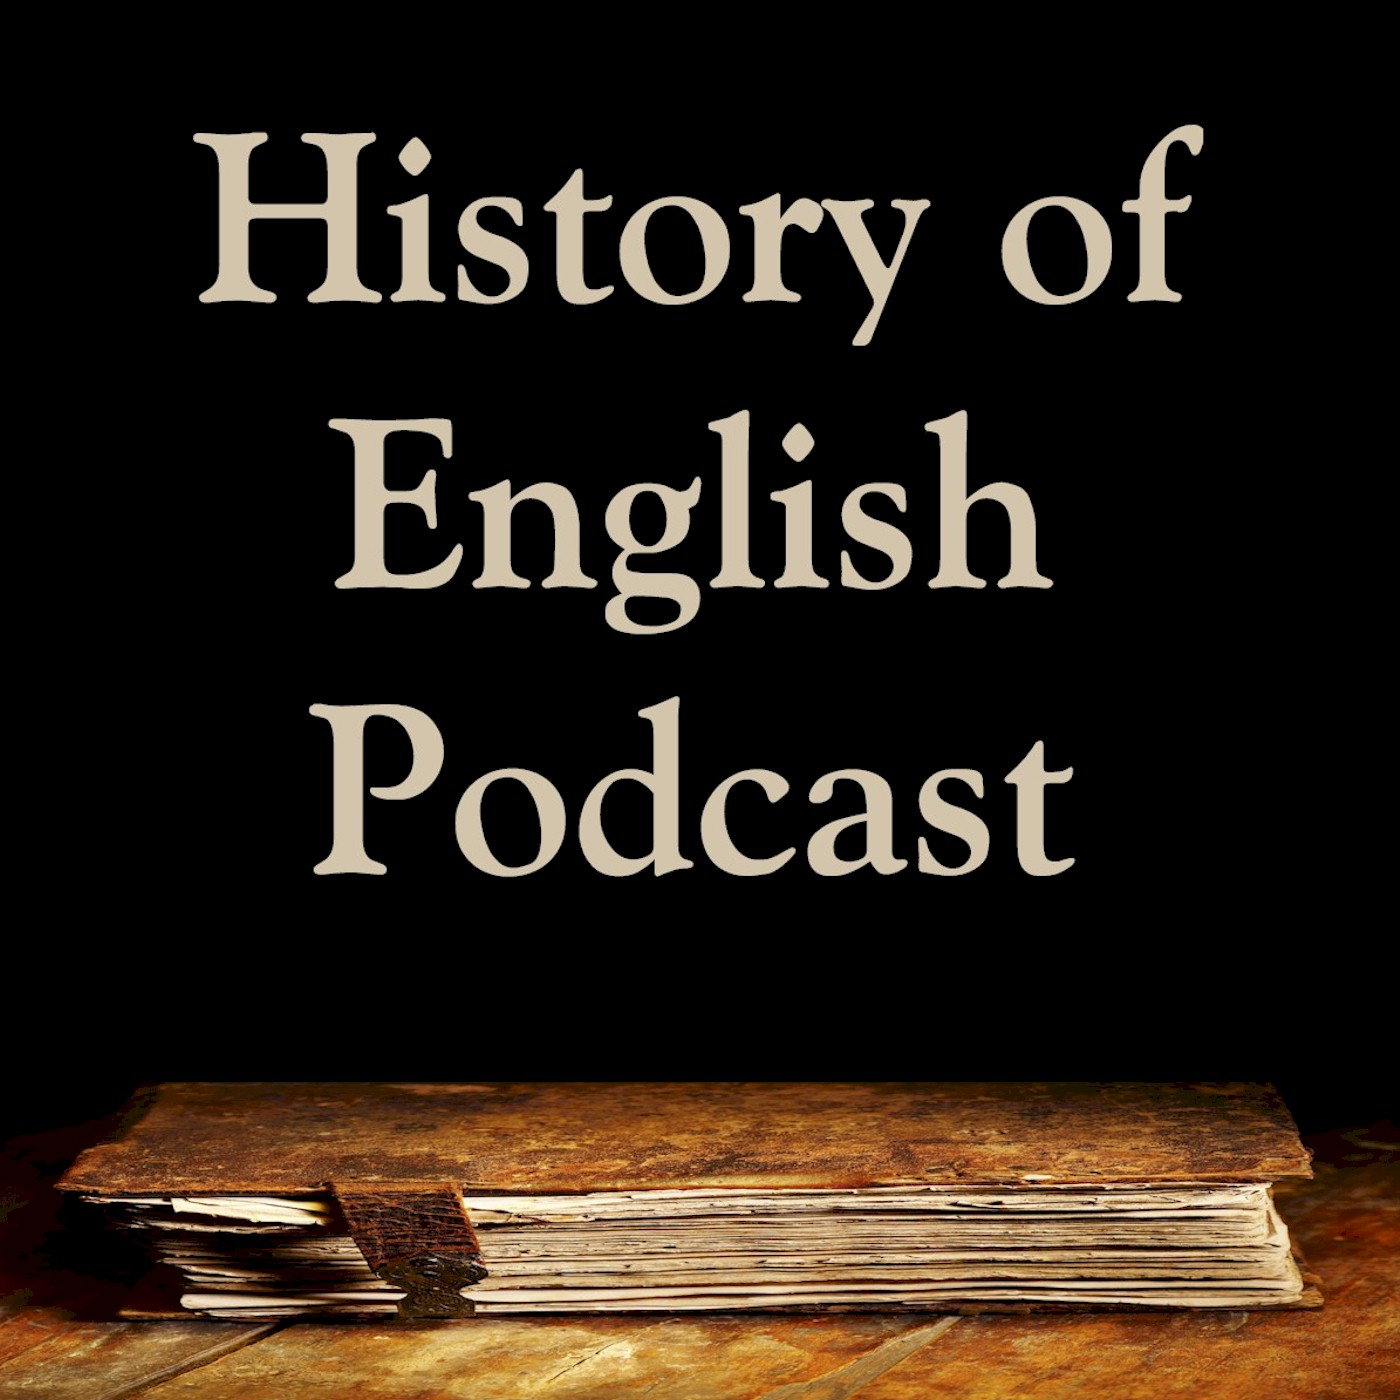 a history of english The study of the history of the english language has a long and rich tradition, starting with a range of editions of important old and middle english texts in the middle of the 19th century.